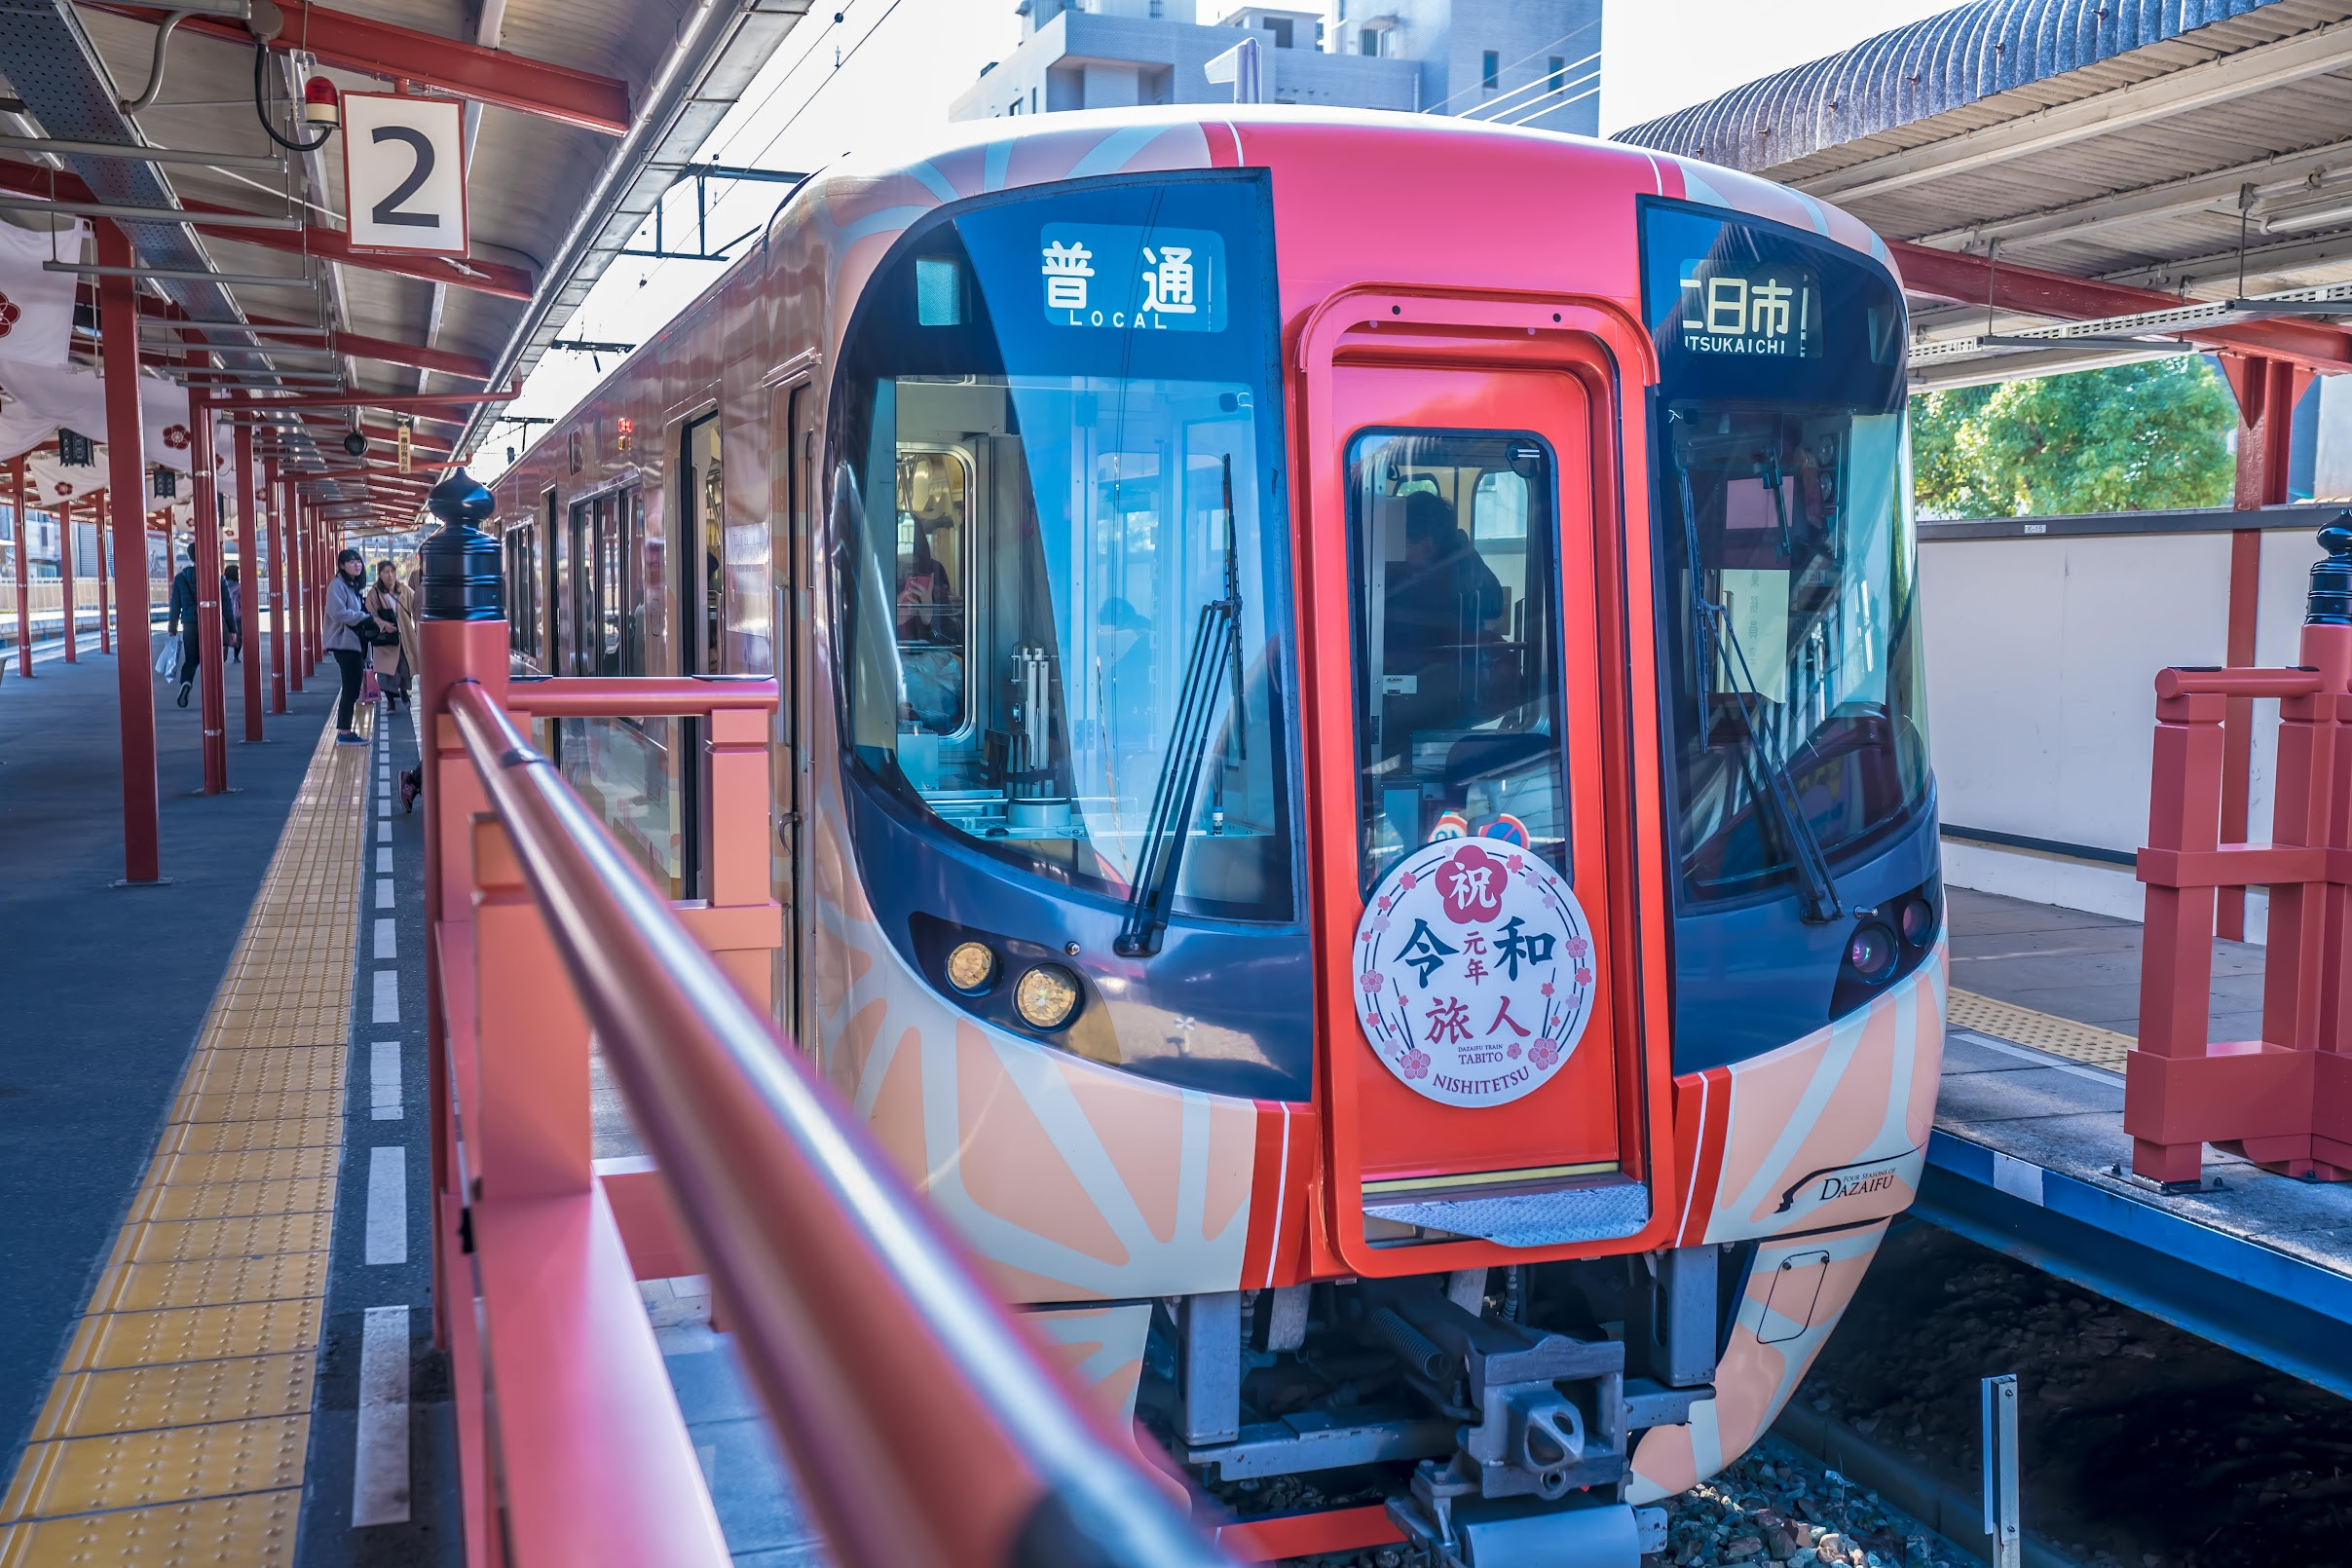 Dazaifu Tenmangu Tourism Train Tabito